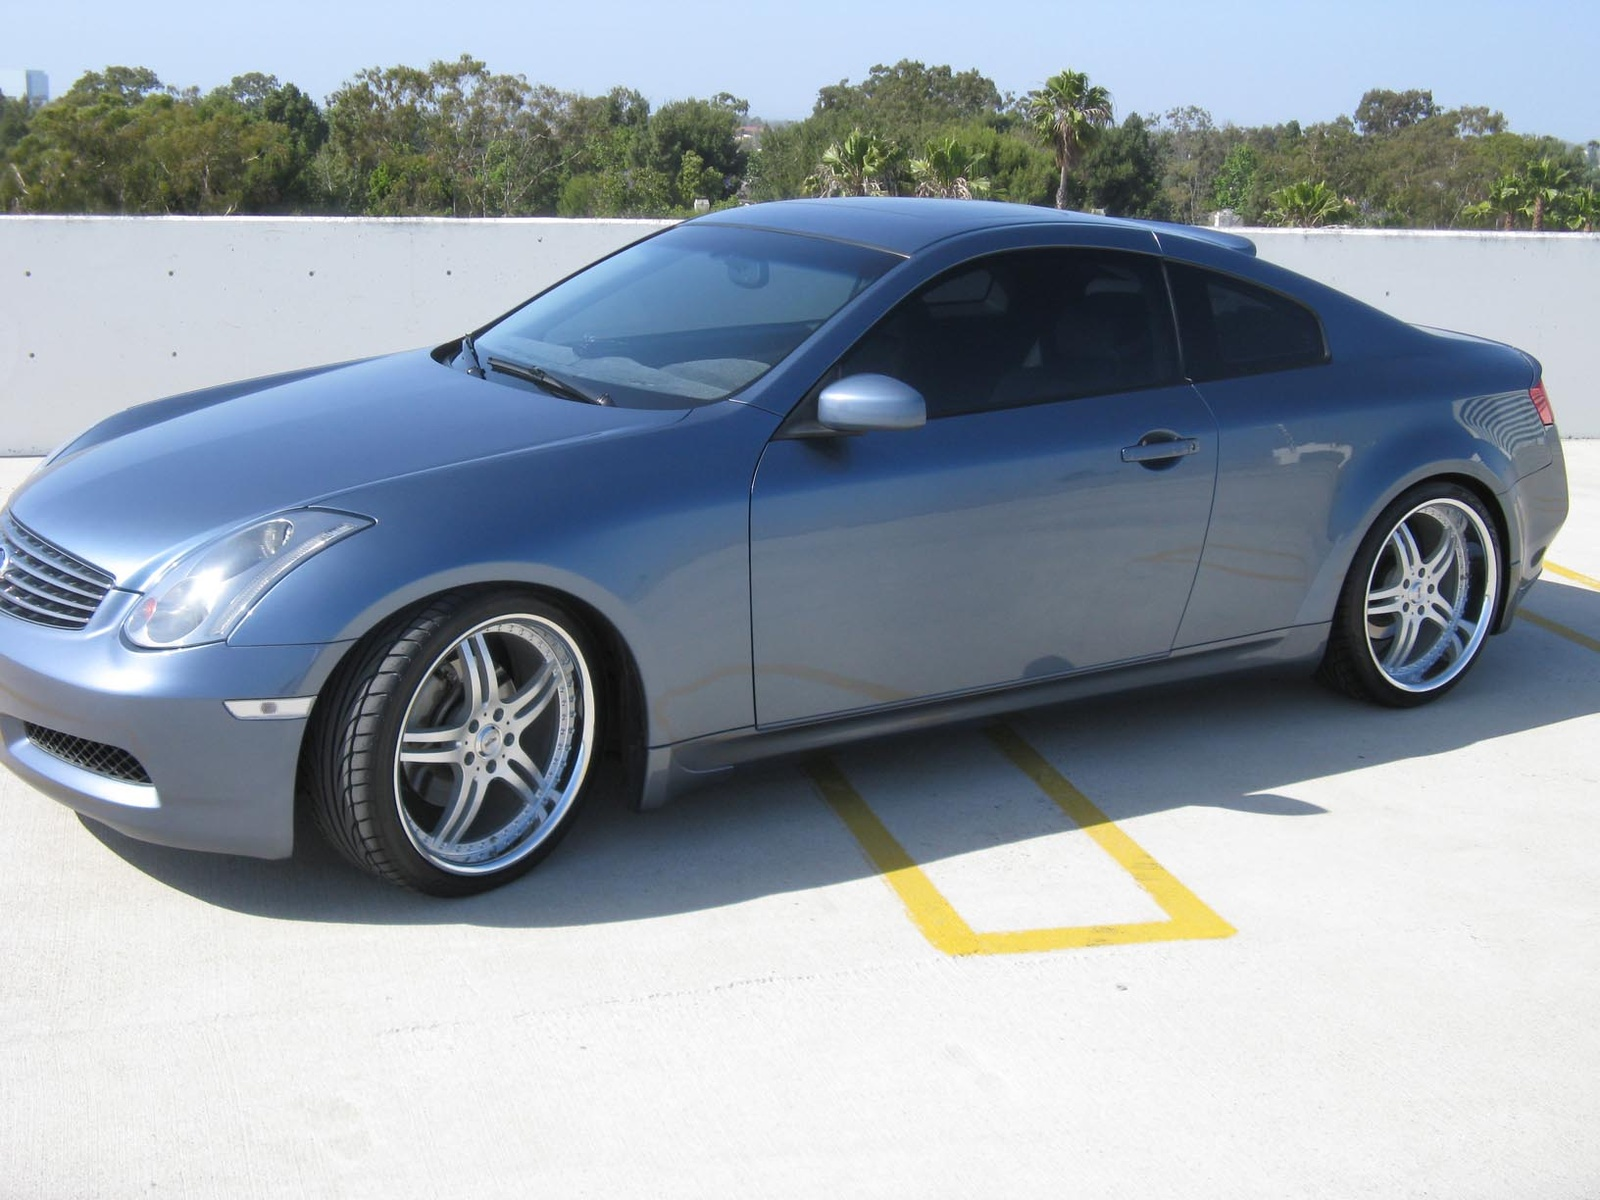 Infiniti g35 coupe related imagesstart 50 weili automotive network 2005 infiniti g35 coupe picture exterior vanachro Images